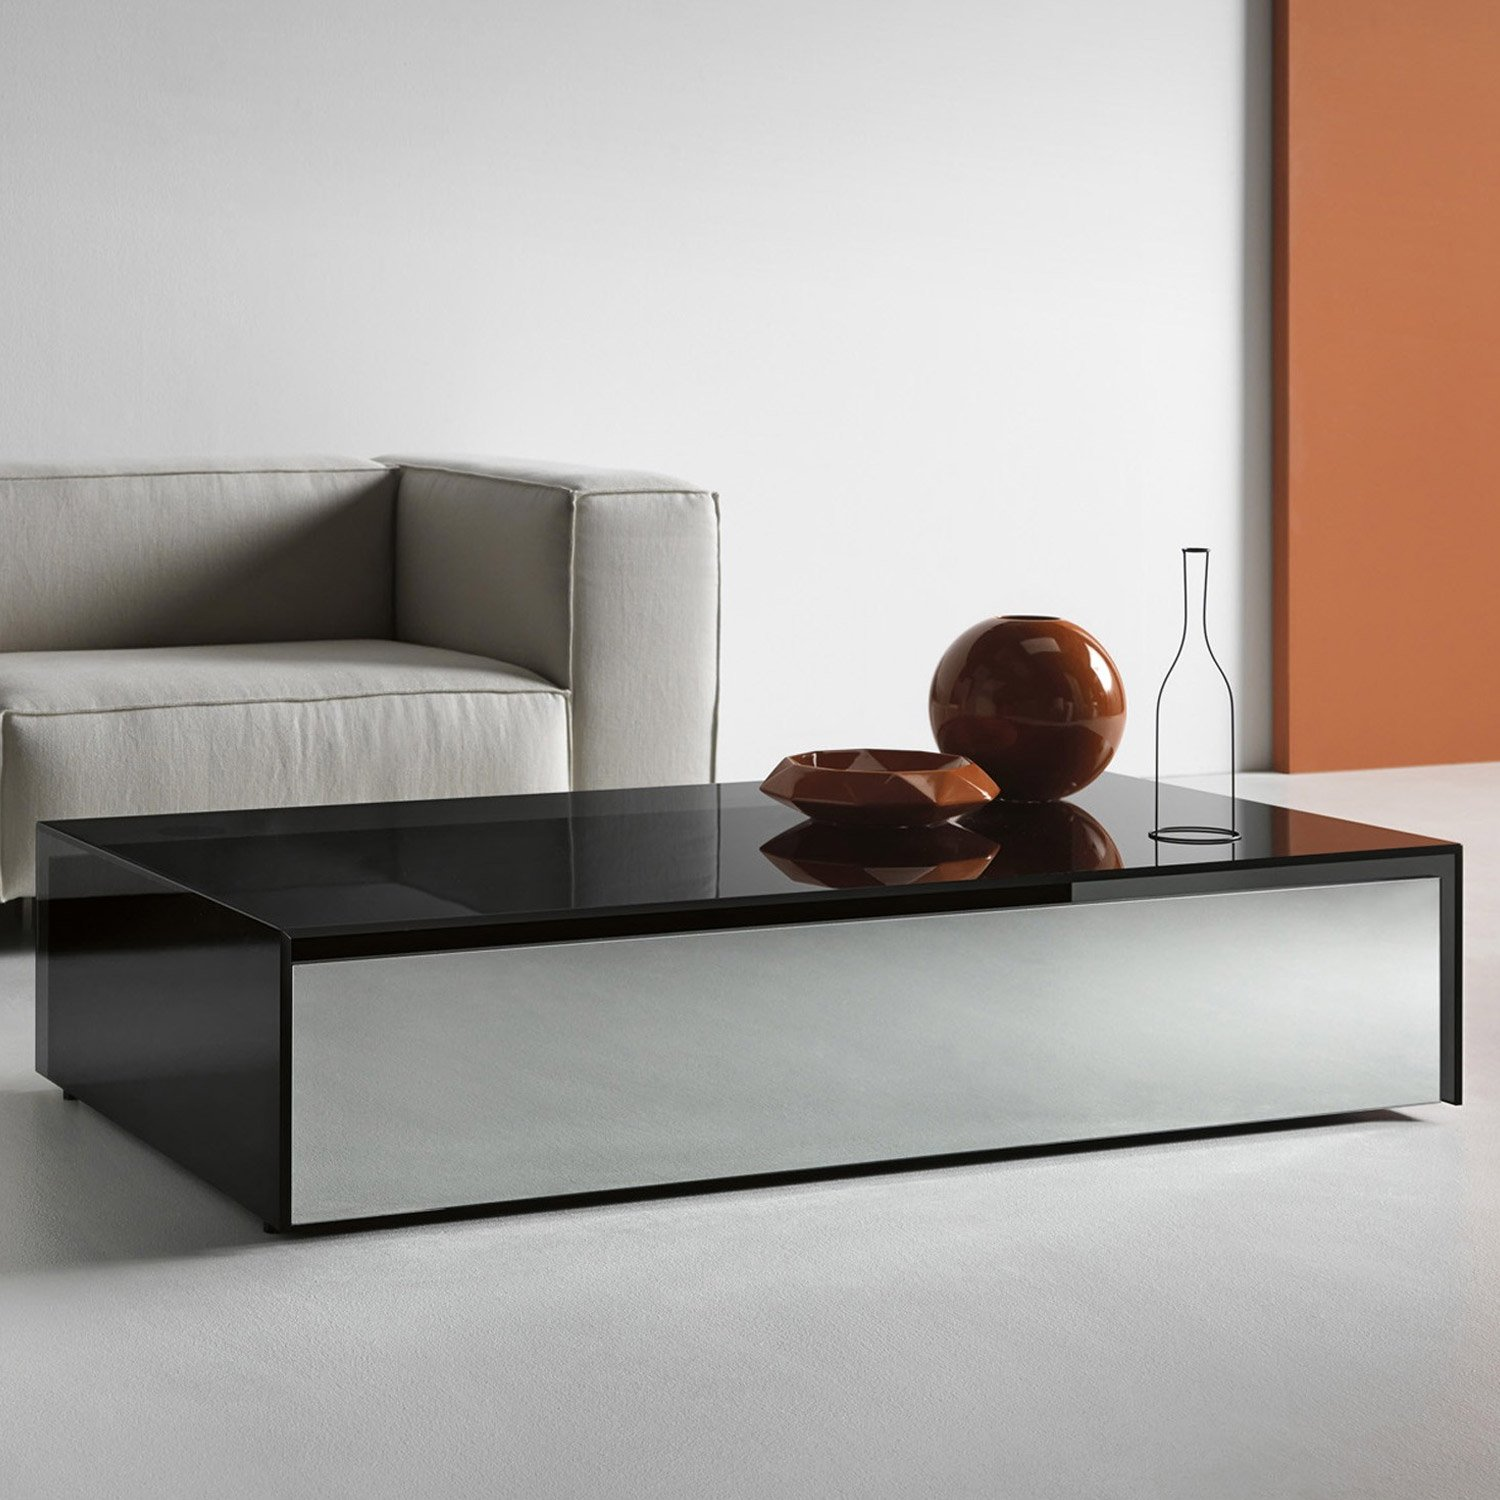 Captivating Gotham Smoked Glass Coffee Table By Tonelli